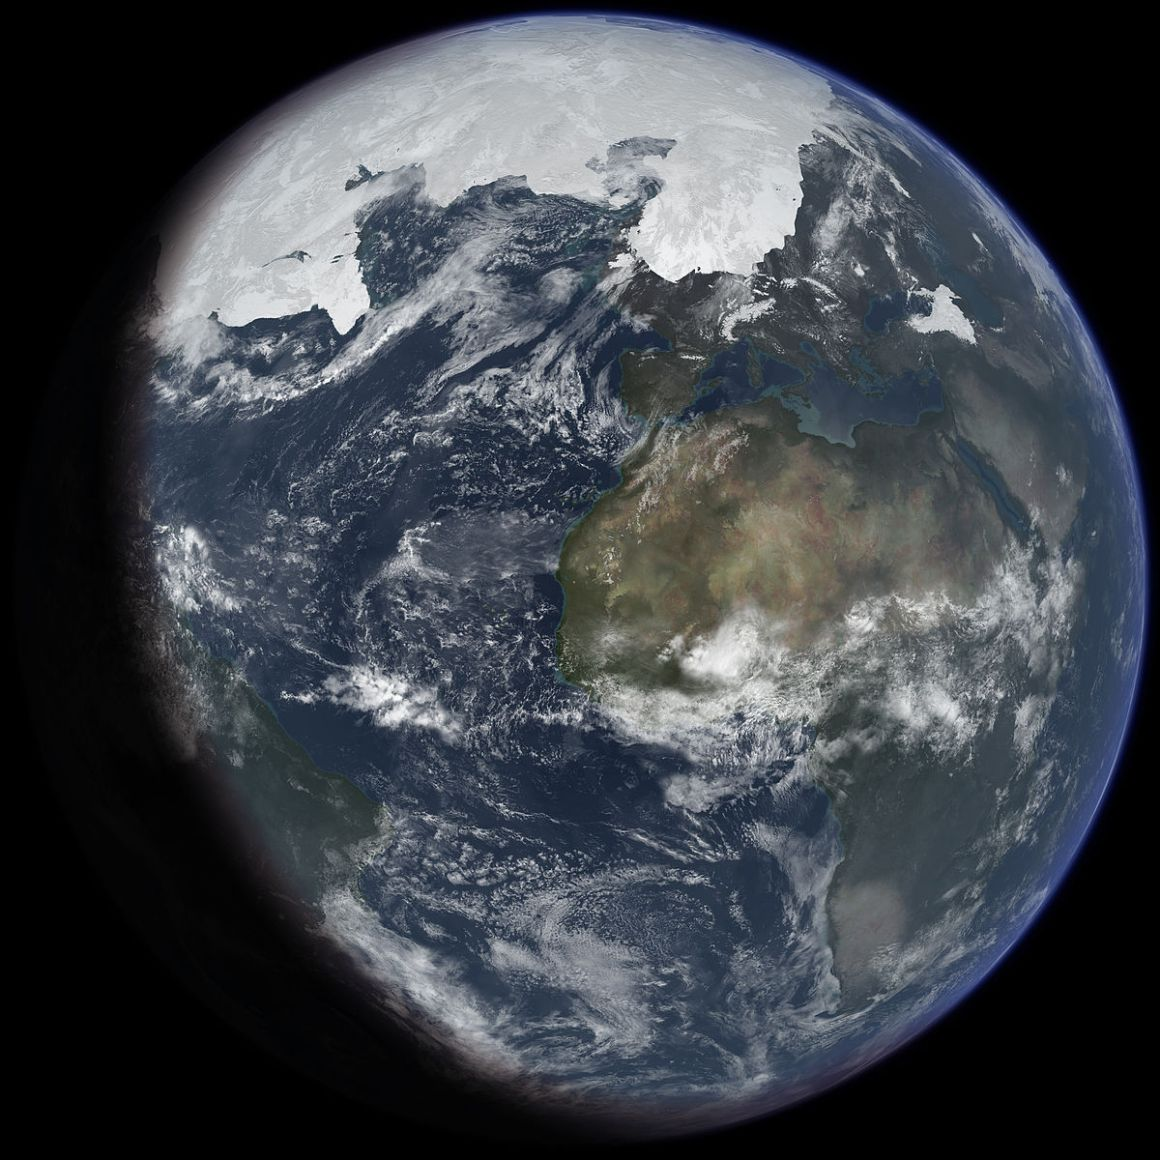 An artist's impression of ice age Earth at glacial maximum. Credit: Wikimedia Commons